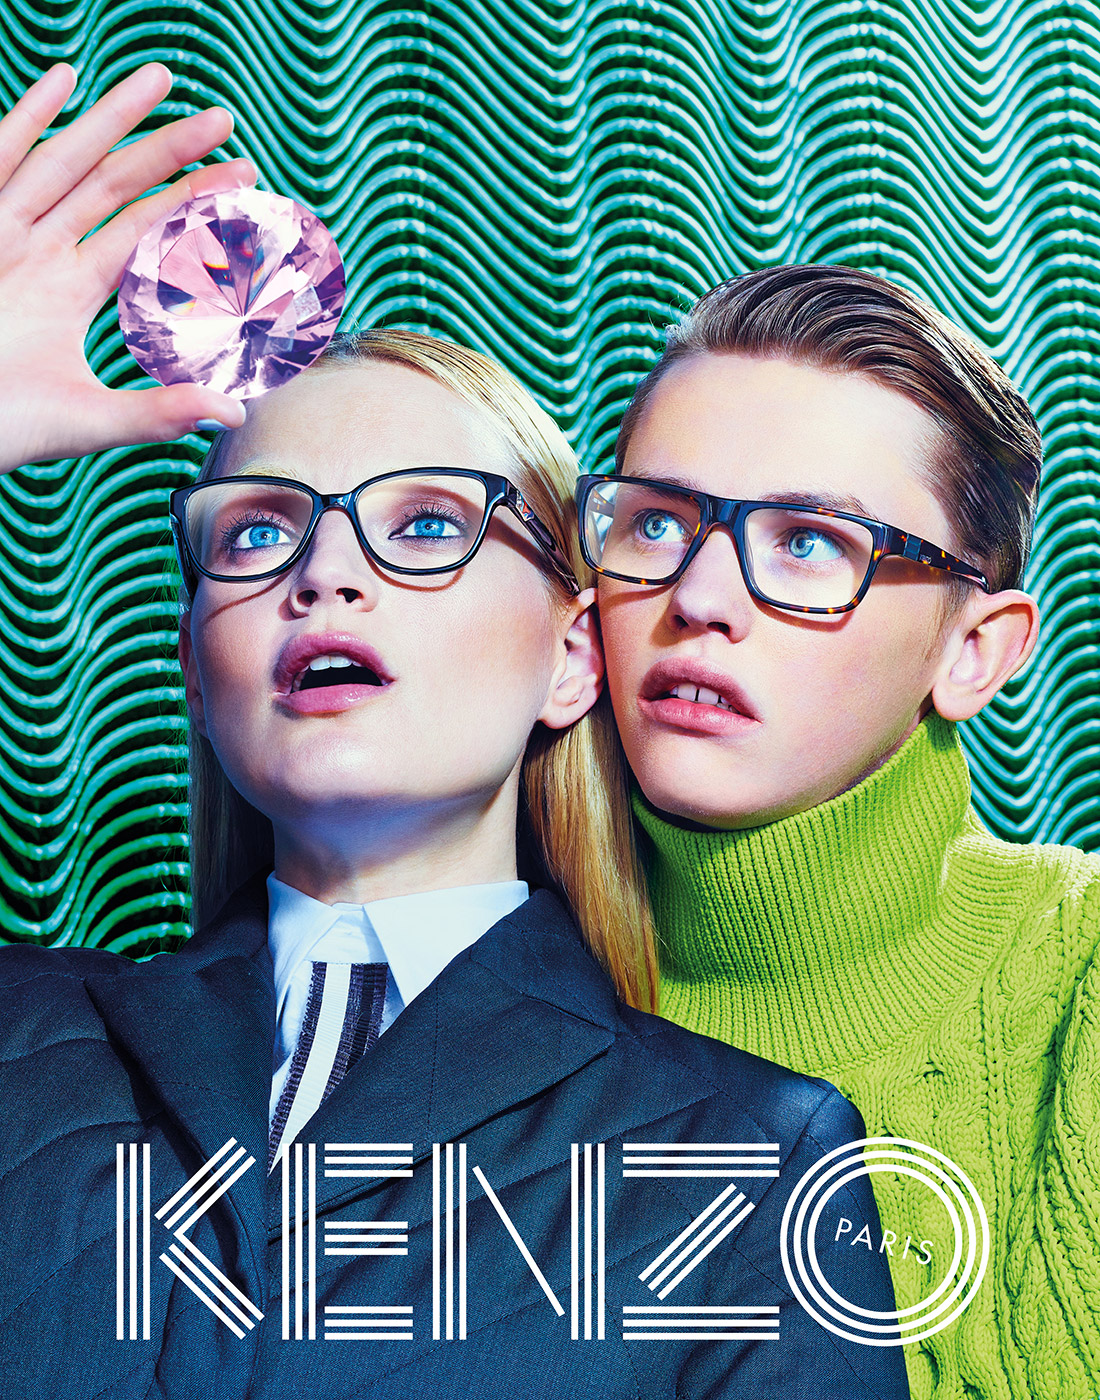 guinevere-van-seenus-robbie-mckinnon-by-pierpaolo-ferrari-for-kenzo-fall-winter-2014-2015-3